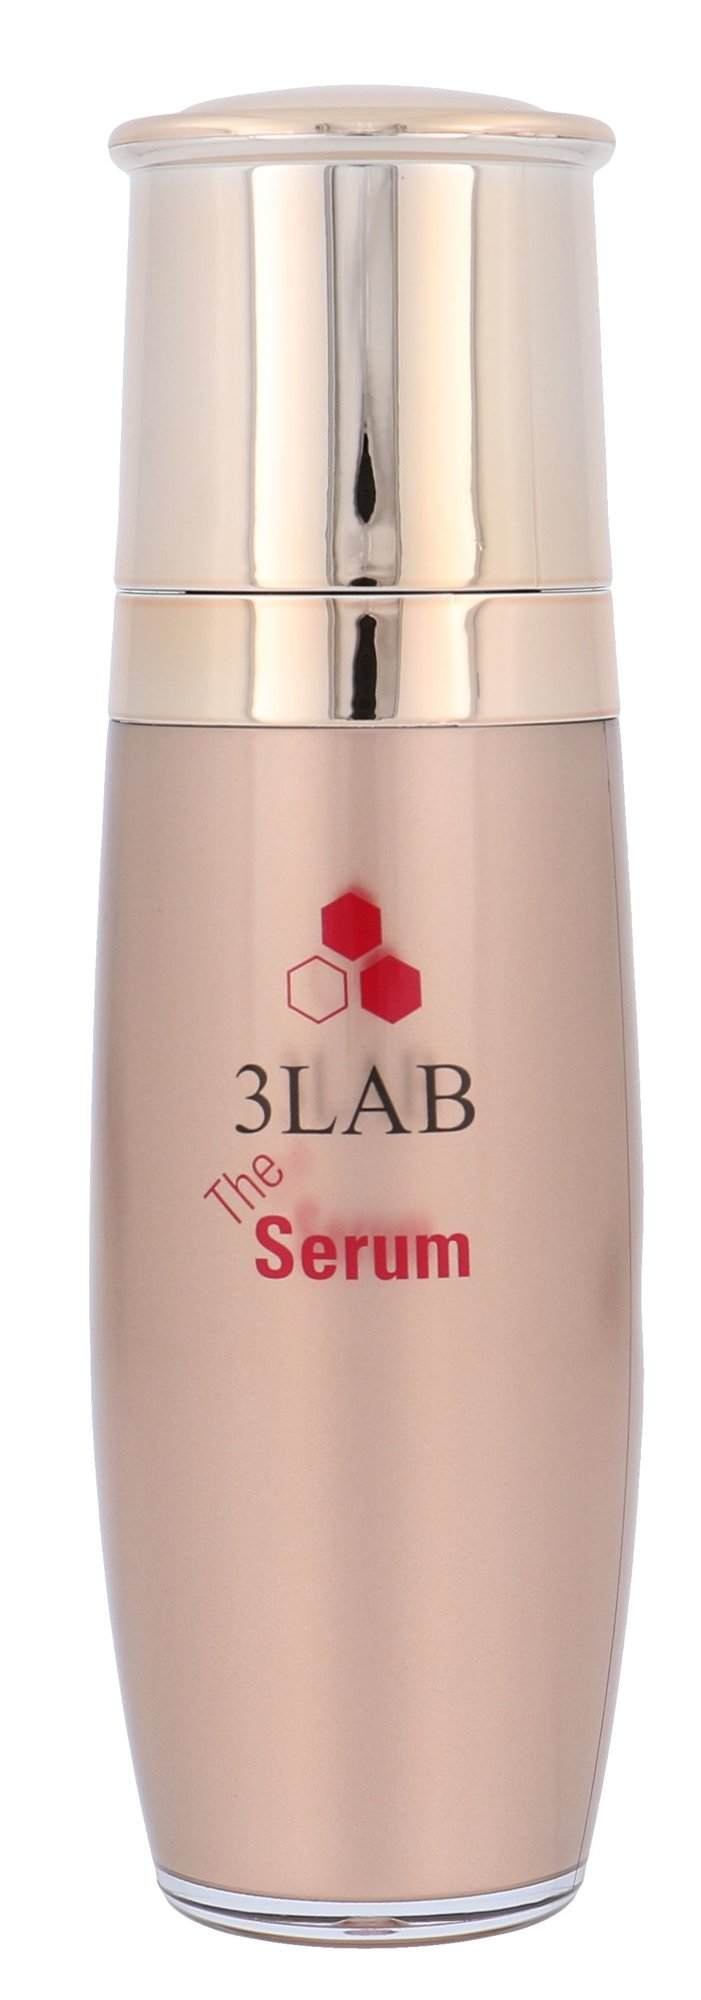 3LAB The Serum